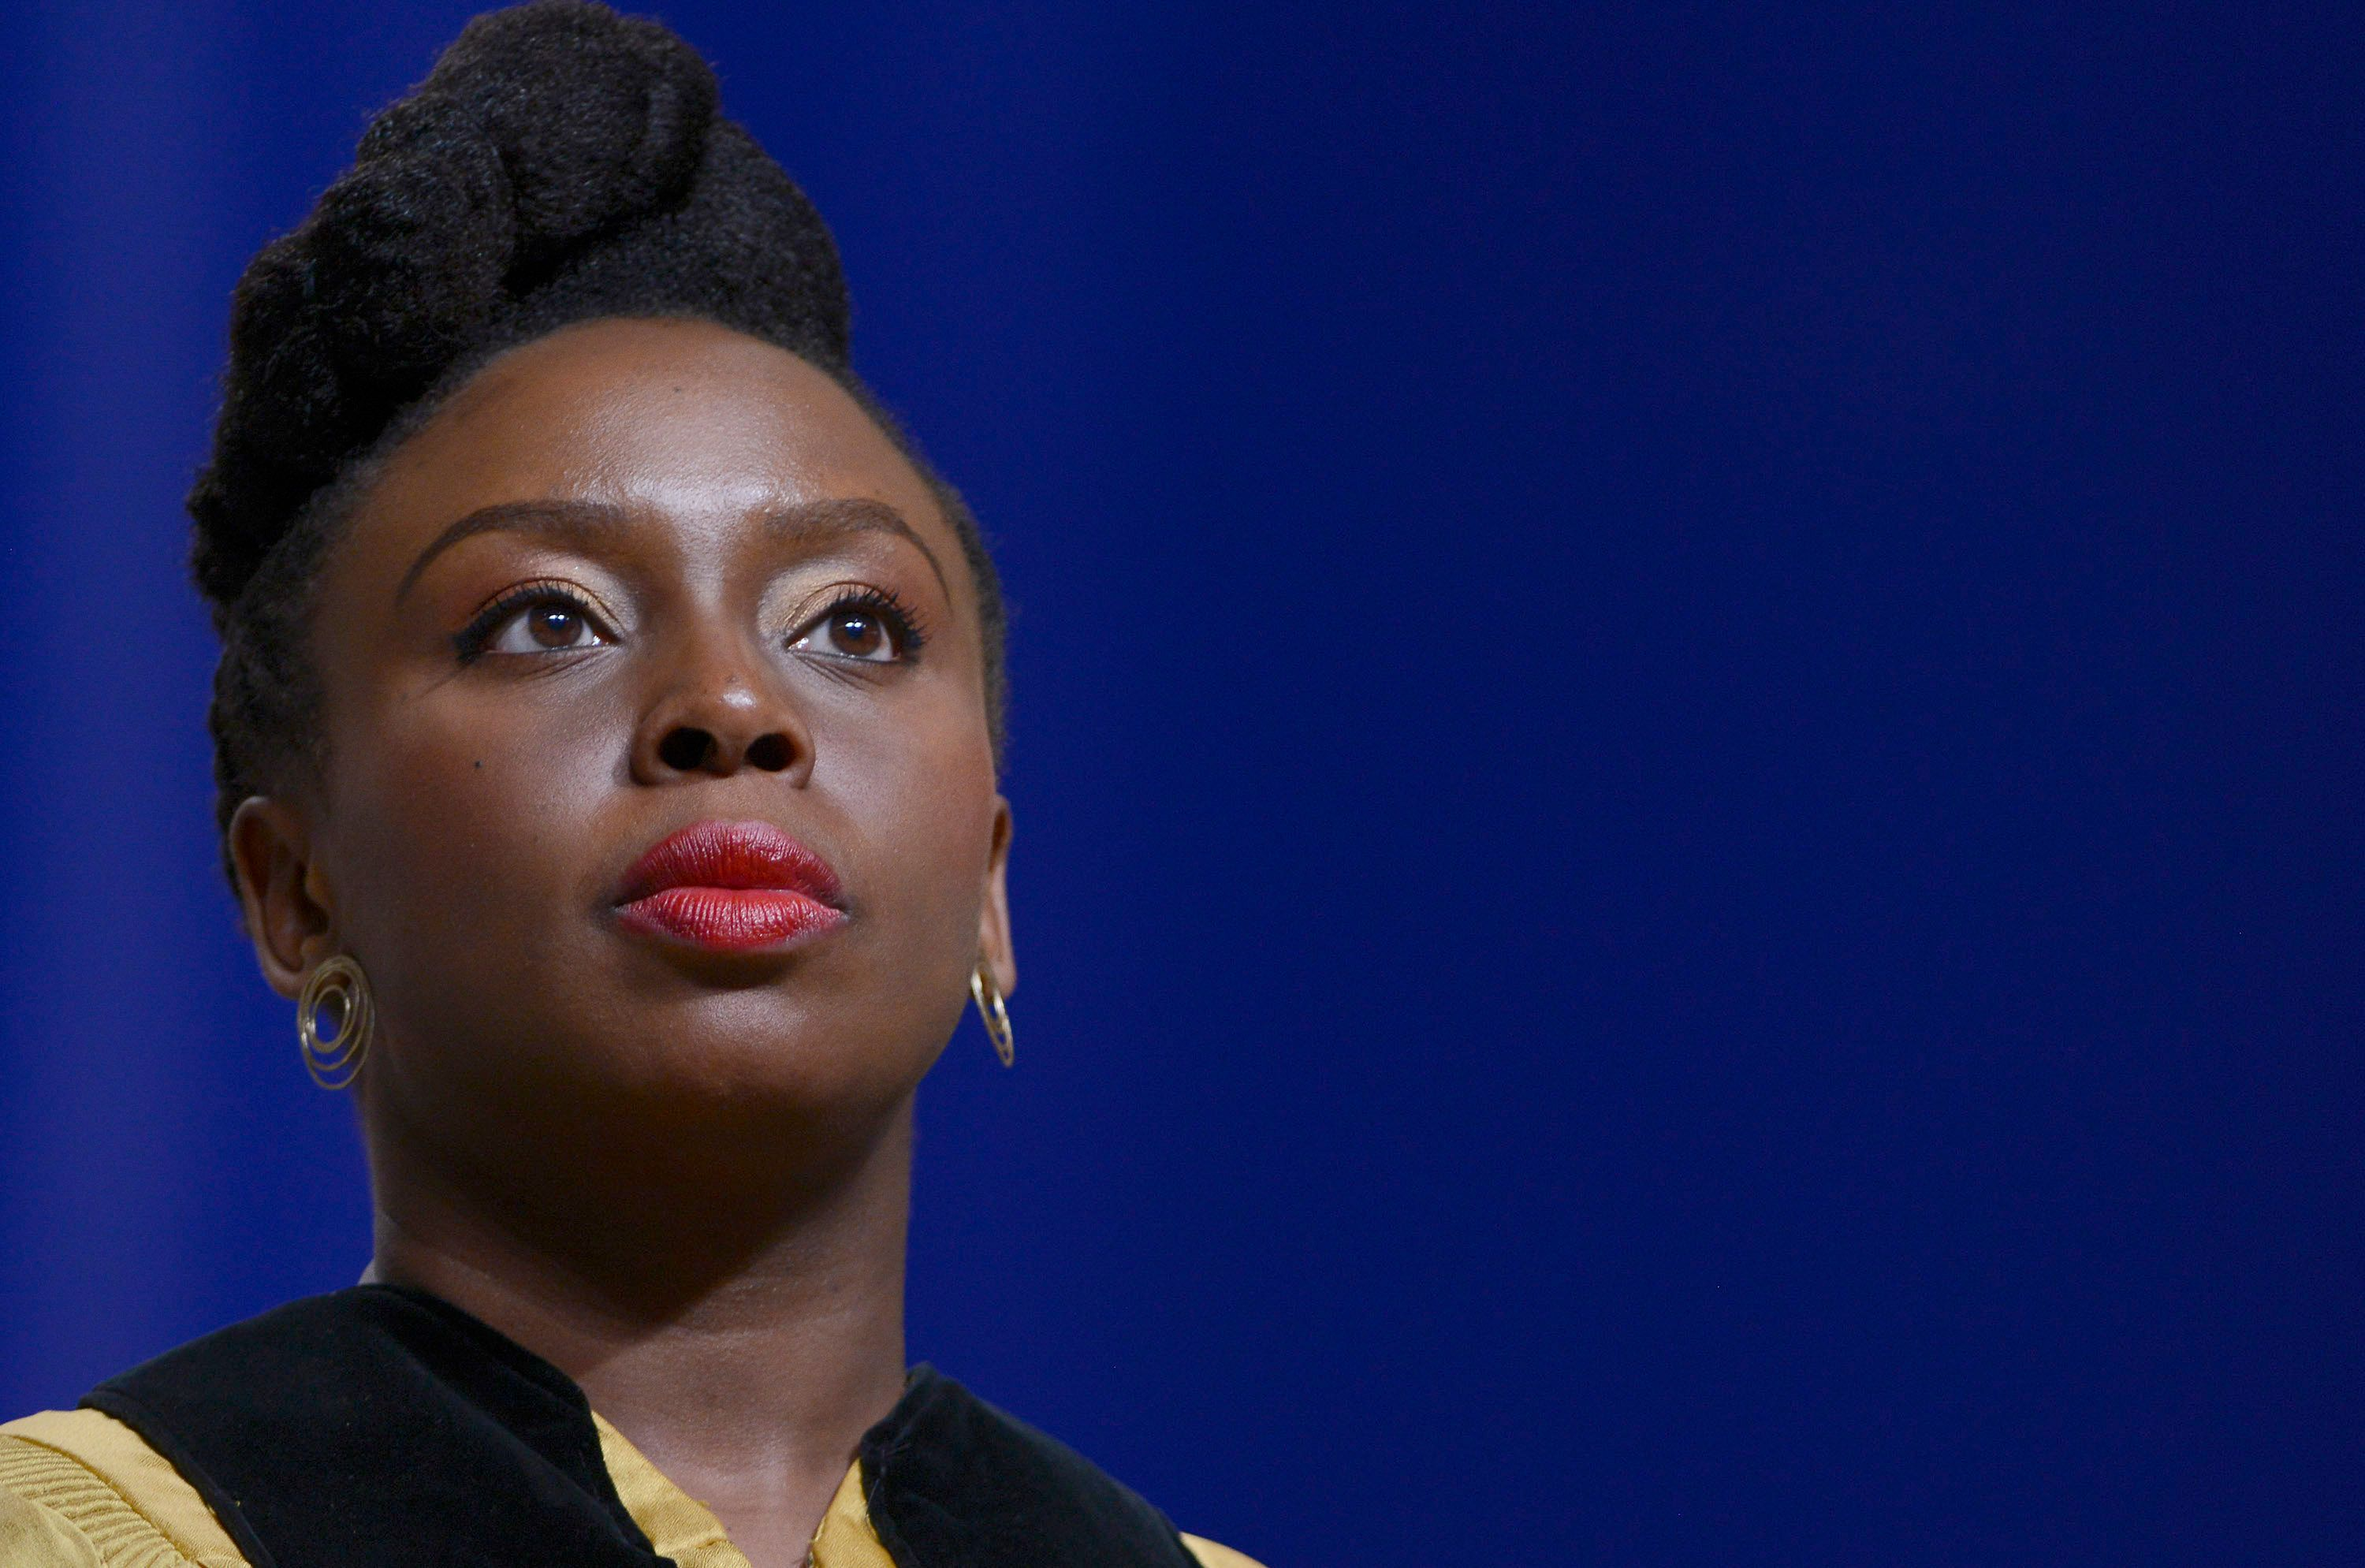 BALTIMORE, MD - MAY 18:  Chimamanda Ngozi Adichie receives an honorary doctorate of Humane Letters from Johns Hopkins University during the commencement ceremony at the Royal Farms Arena on May 18, 2016 in Baltimore, Maryland.  (Photo by Leigh Vogel/Getty Images)